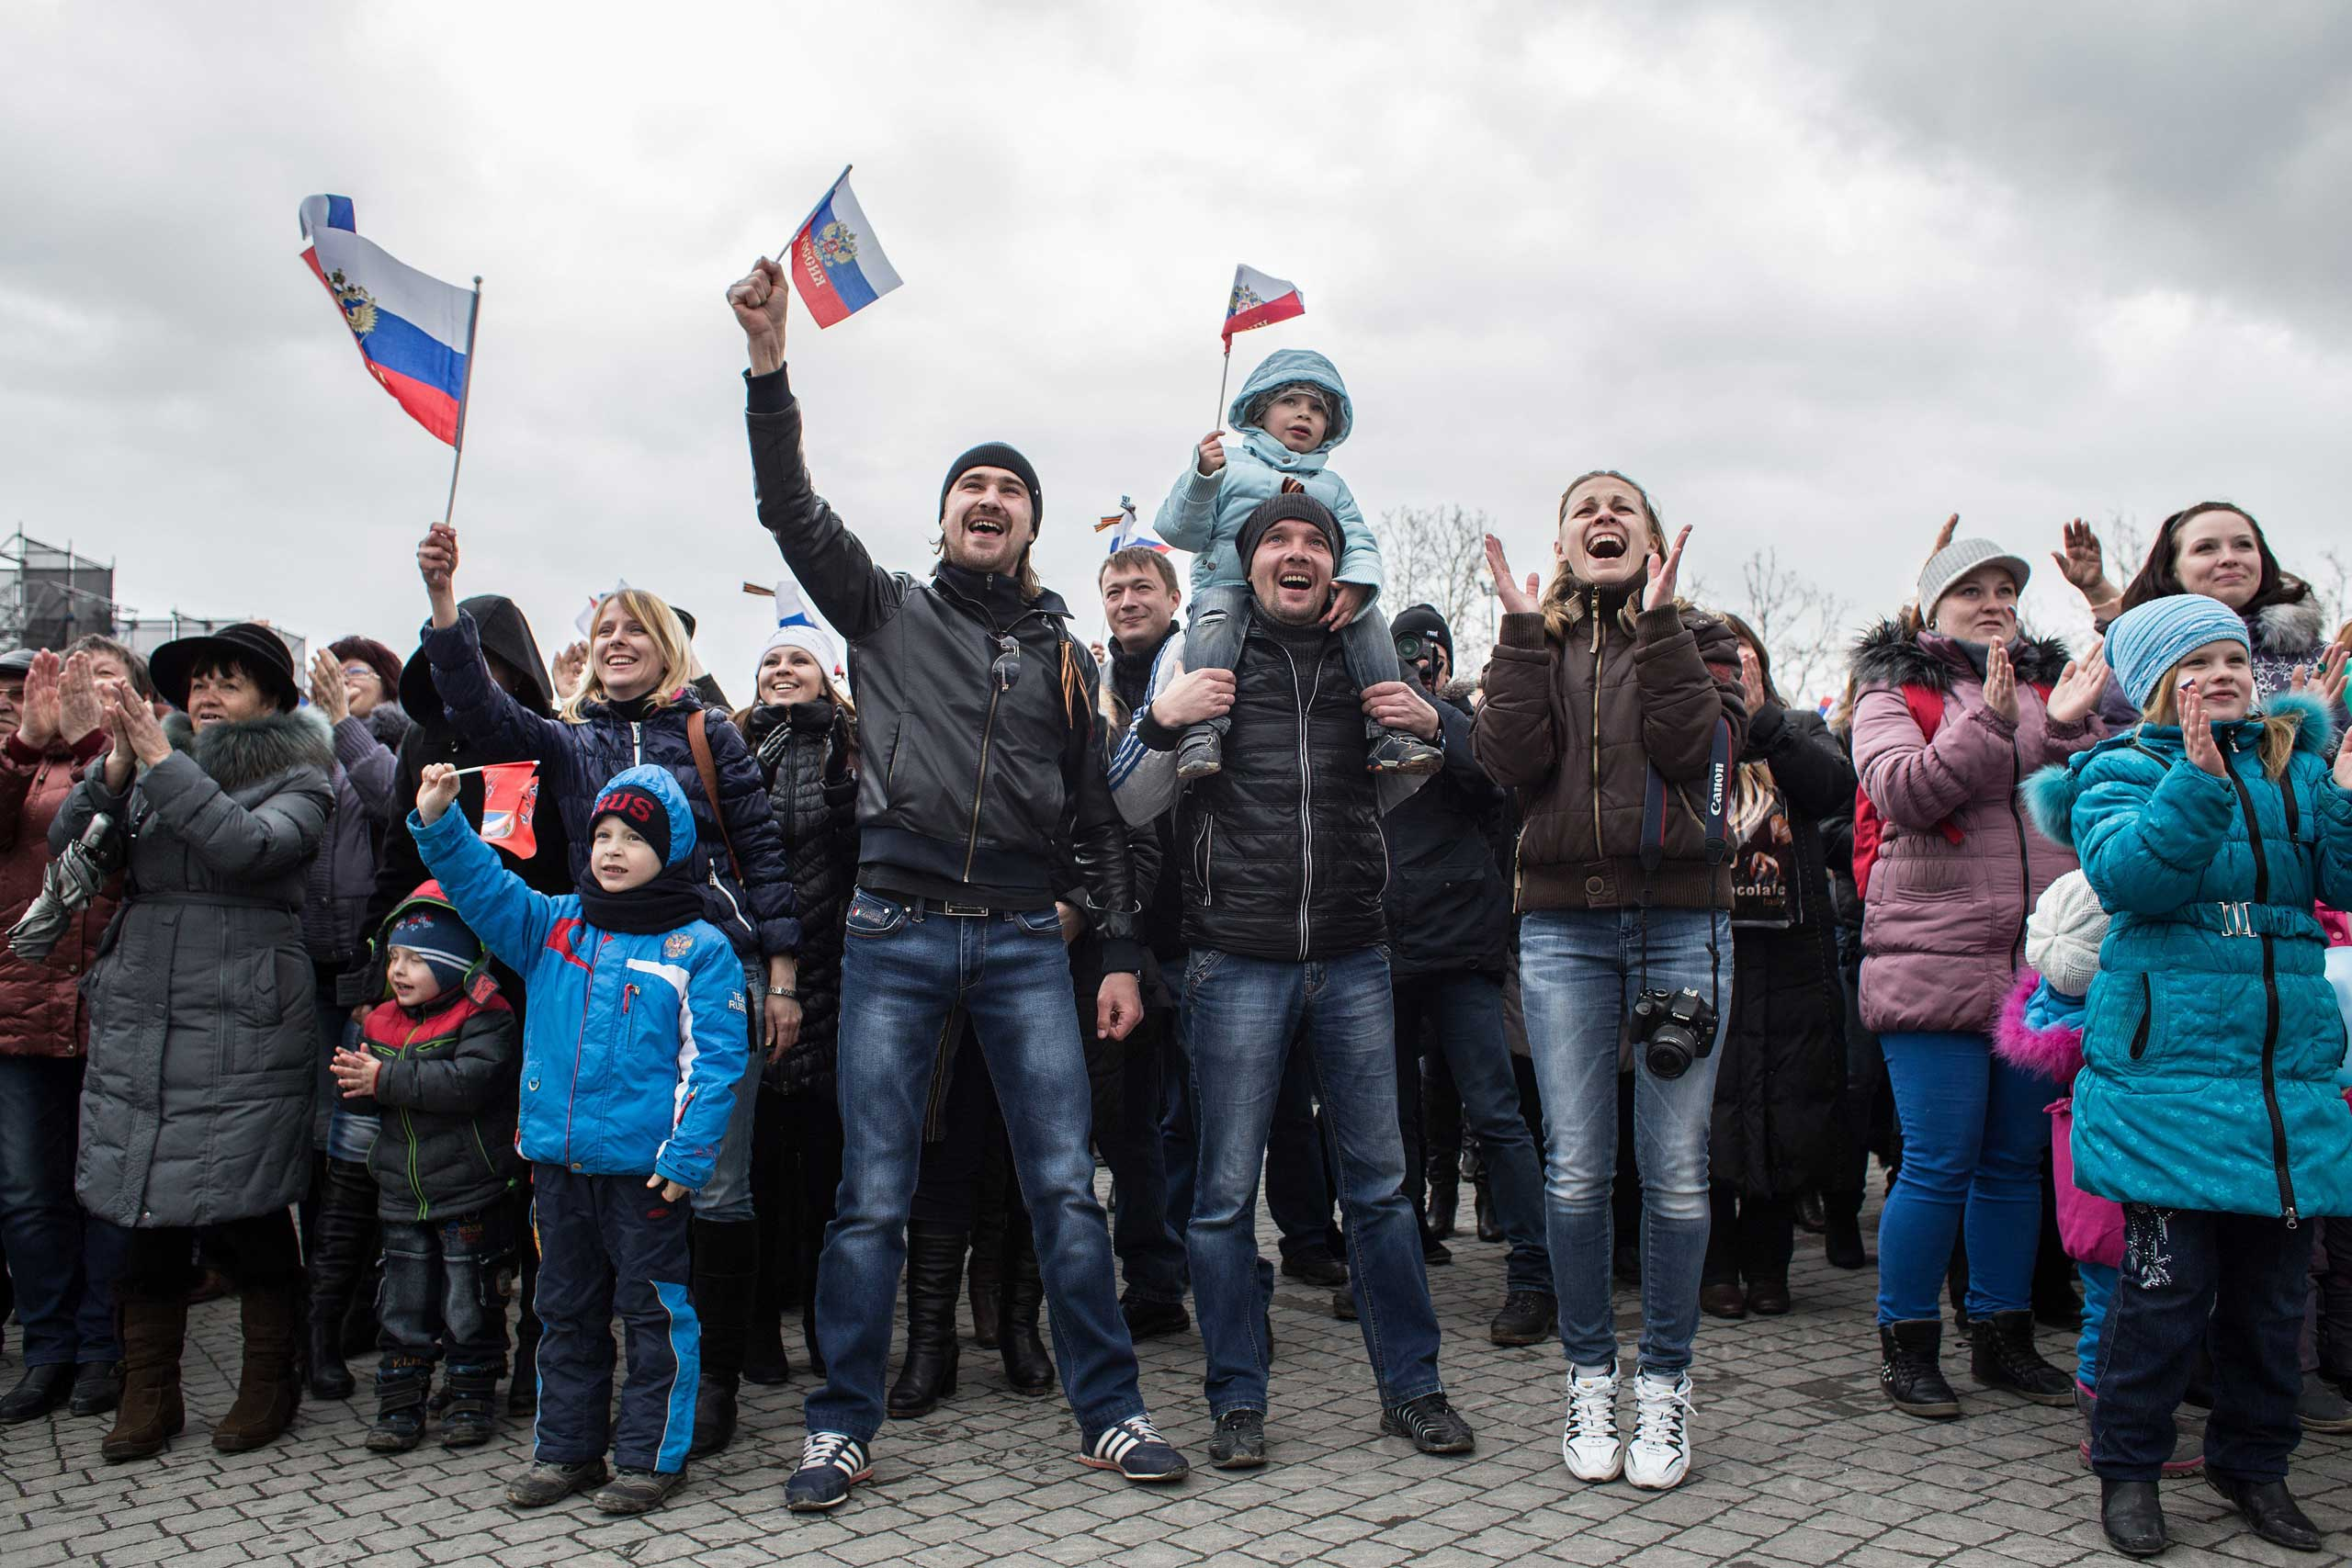 People celebrate the first anniversary of the annexation, March 18, 2015 in Sevastopol.